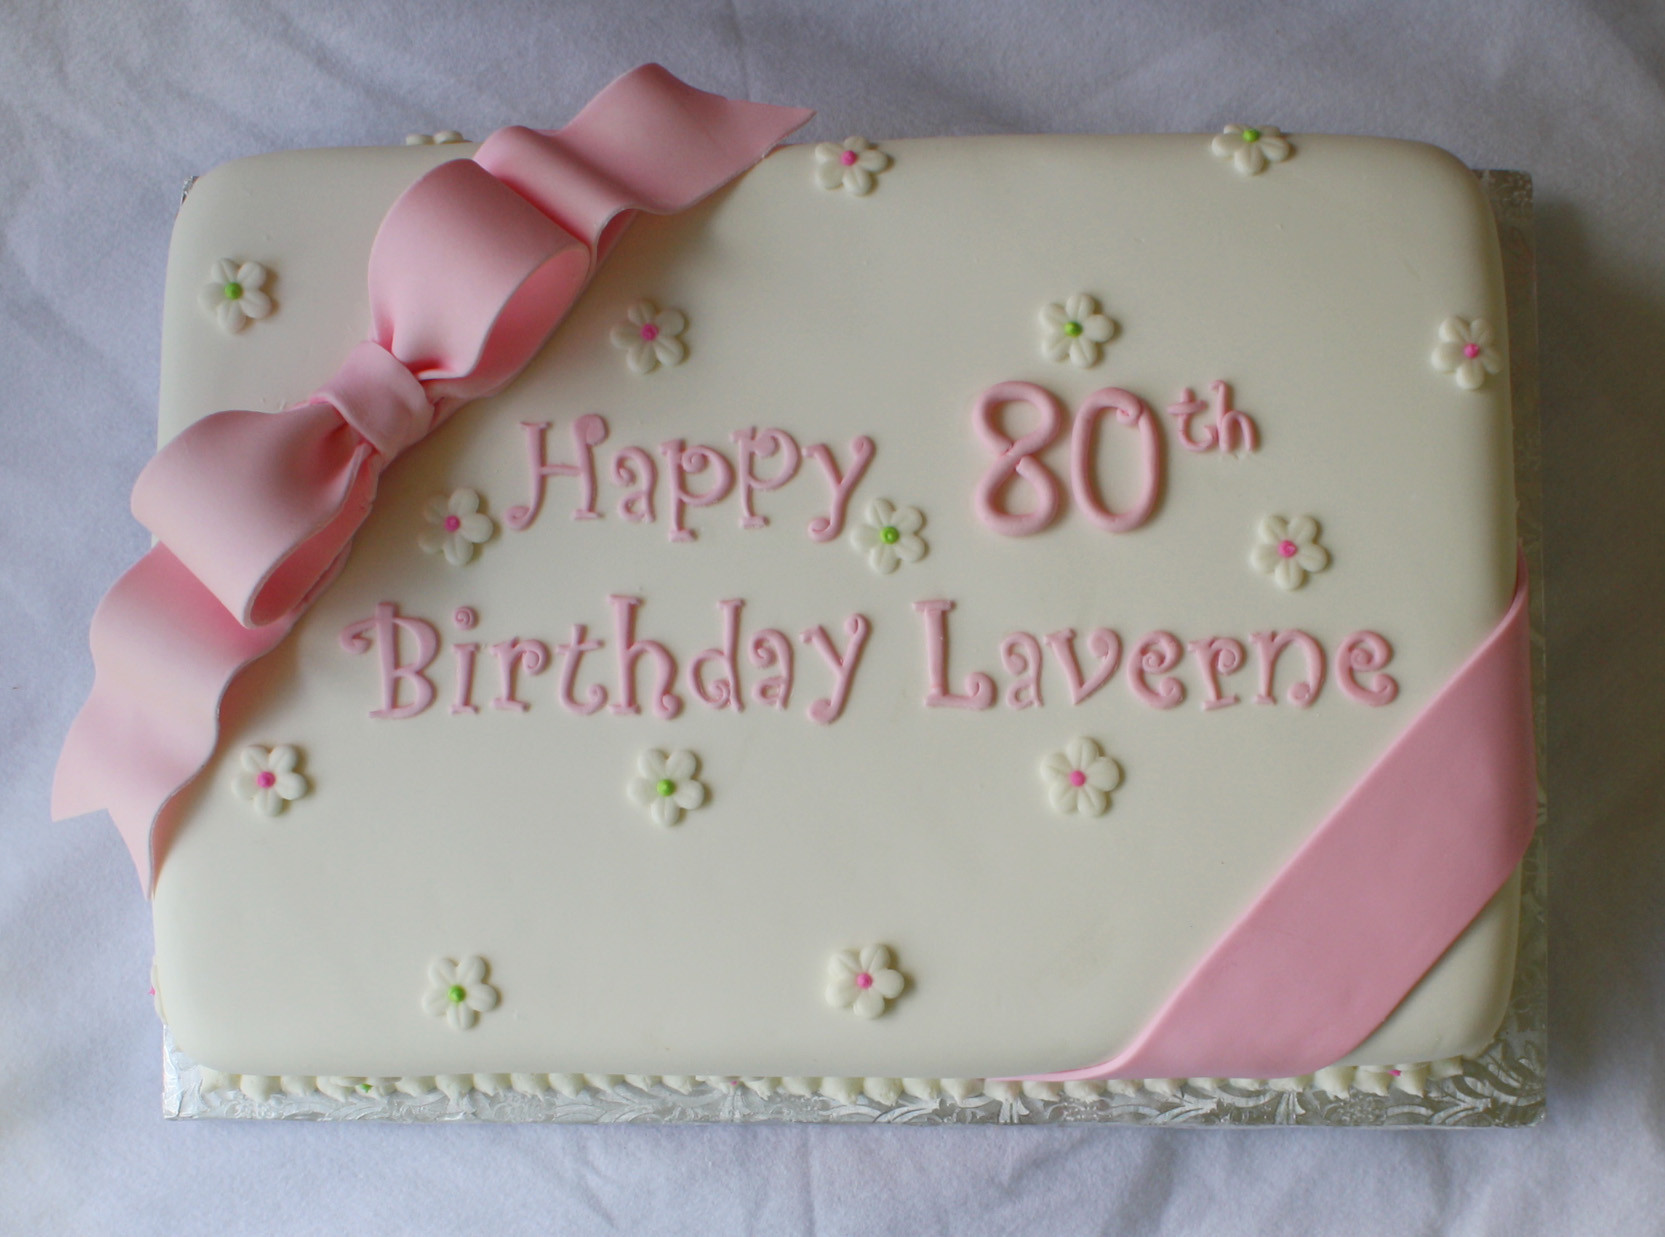 Best ideas about Birthday Sheet Cake . Save or Pin Pink & Green Sheet Cakes for 1st and 80th Birthdays Now.